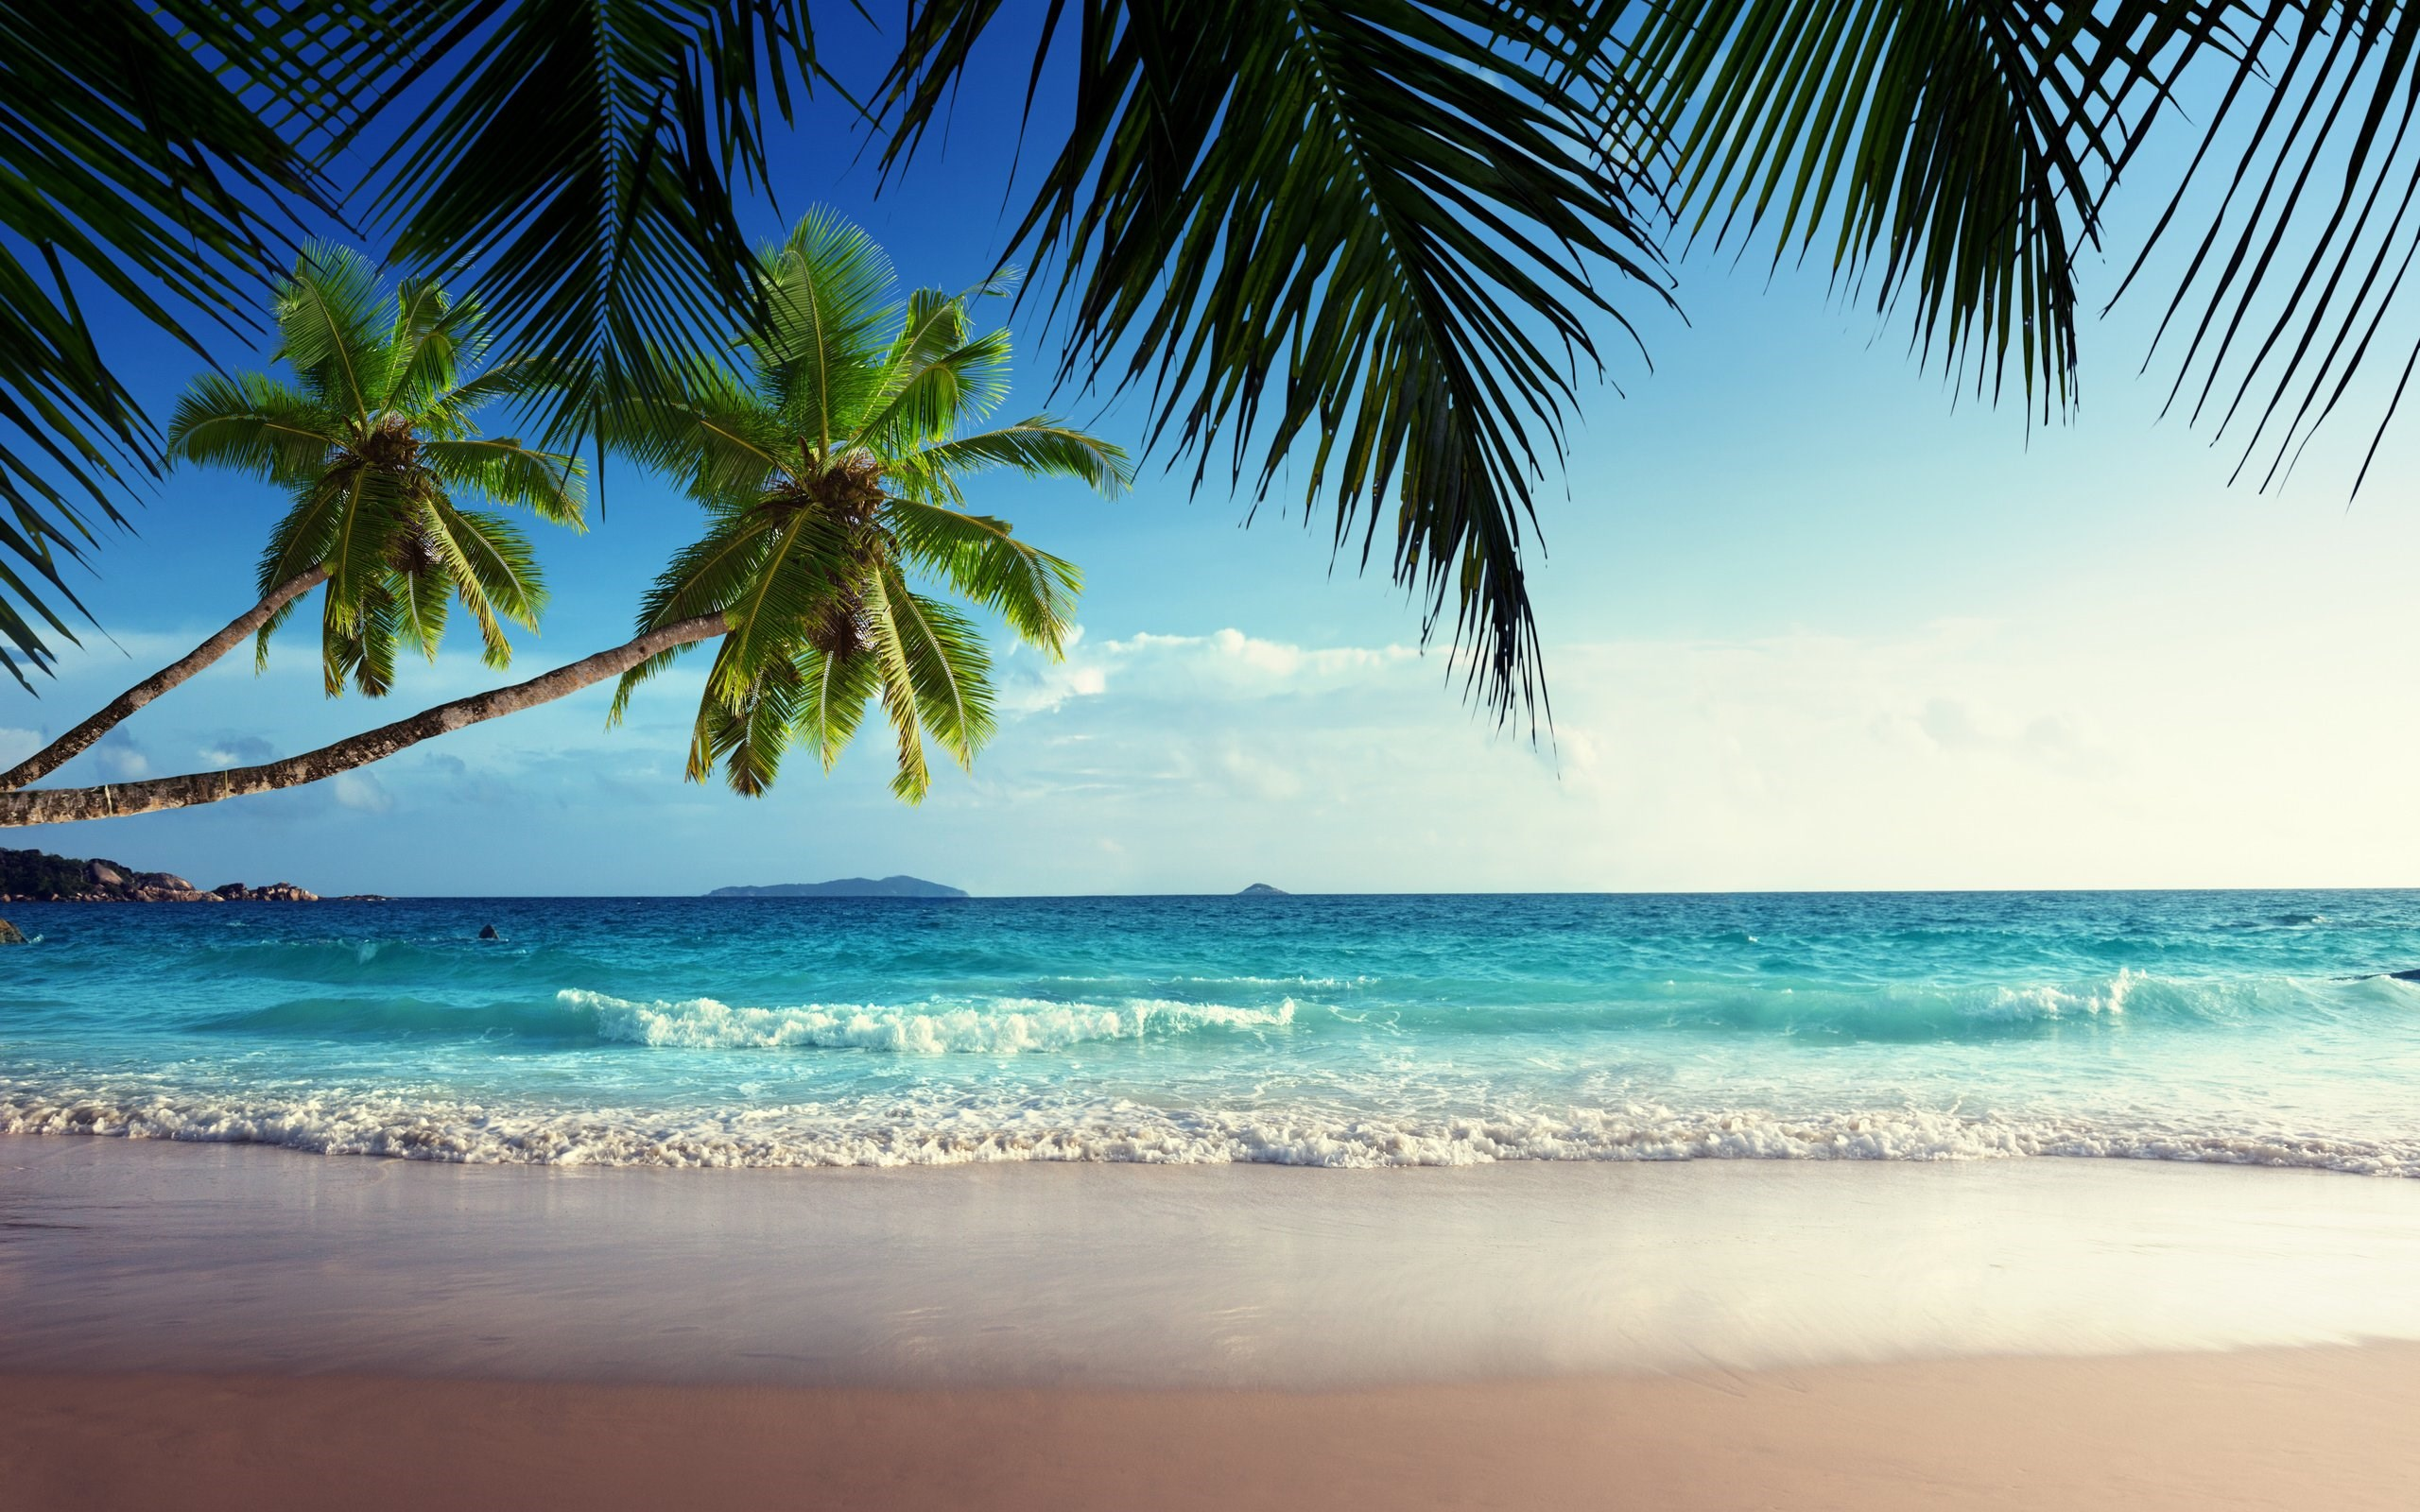 Emerald Sea Paradise Sunshine Beach Wallpaper 2560x1600